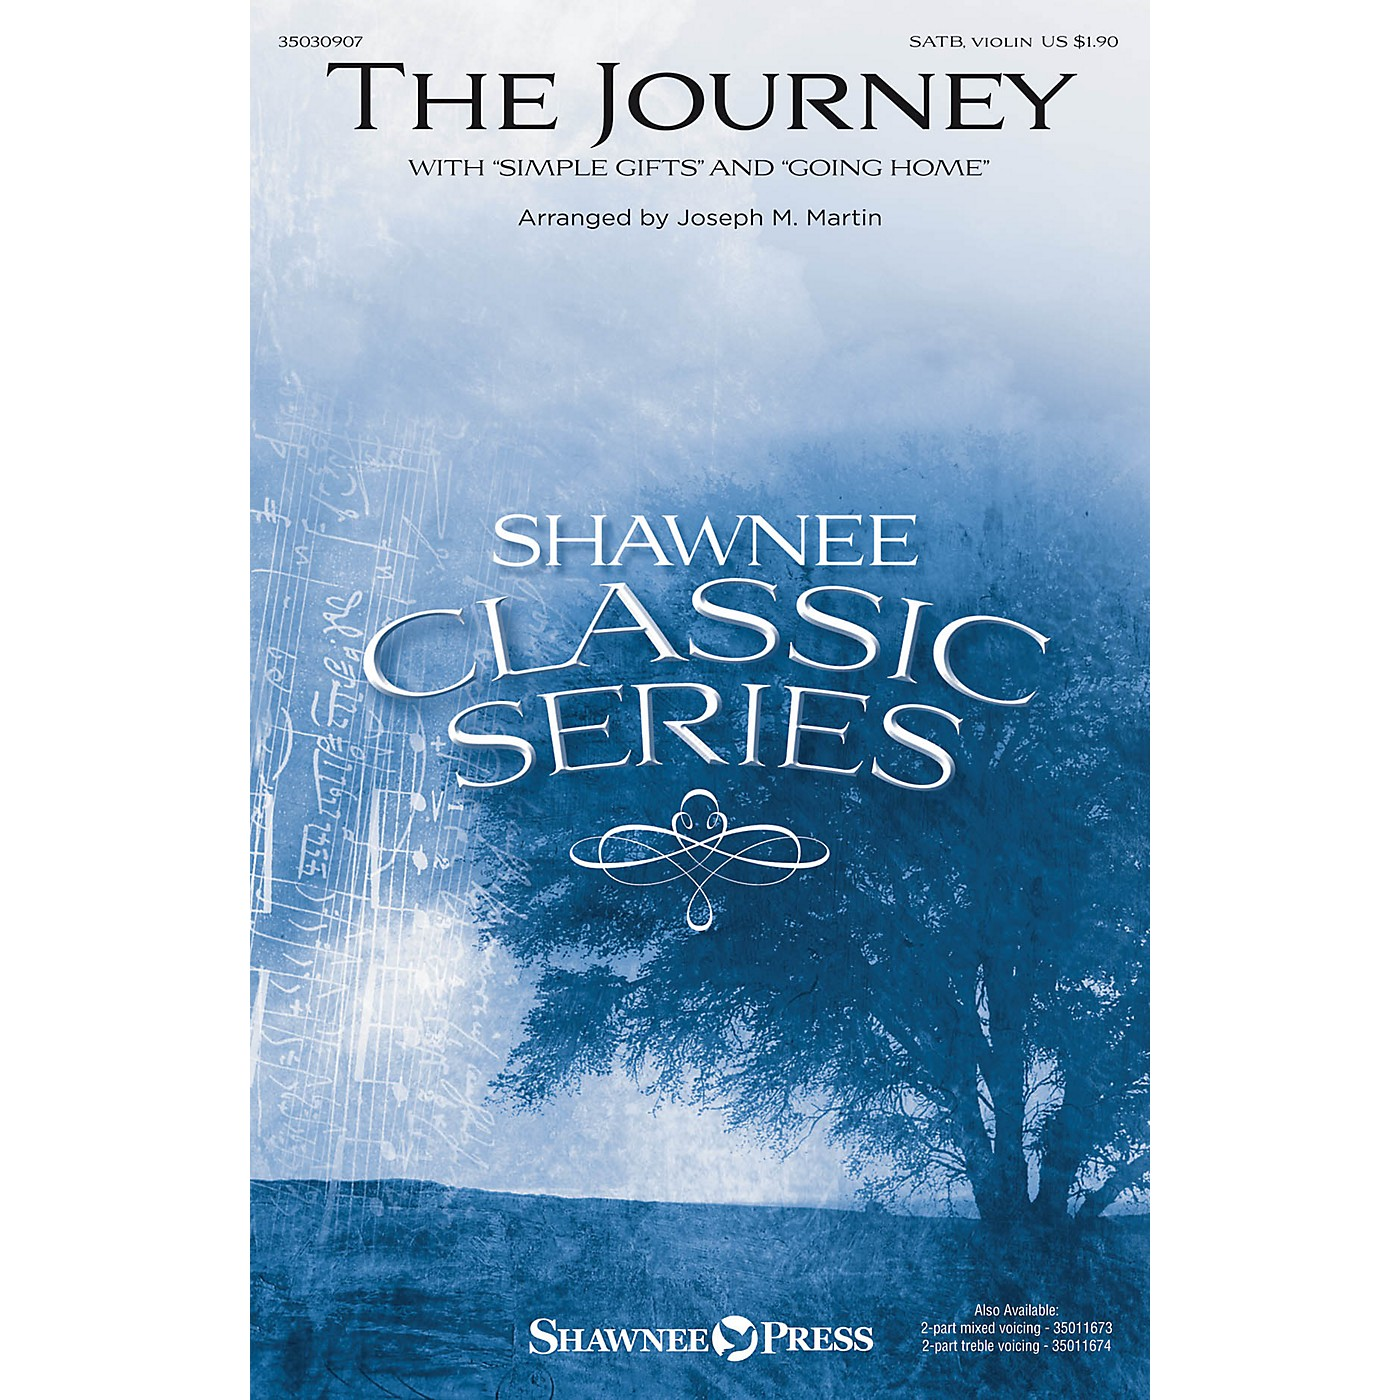 Shawnee Press The Journey (with Simple Gifts and Going Home) SATB W/ VIOLIN arranged by Joseph M. Martin thumbnail